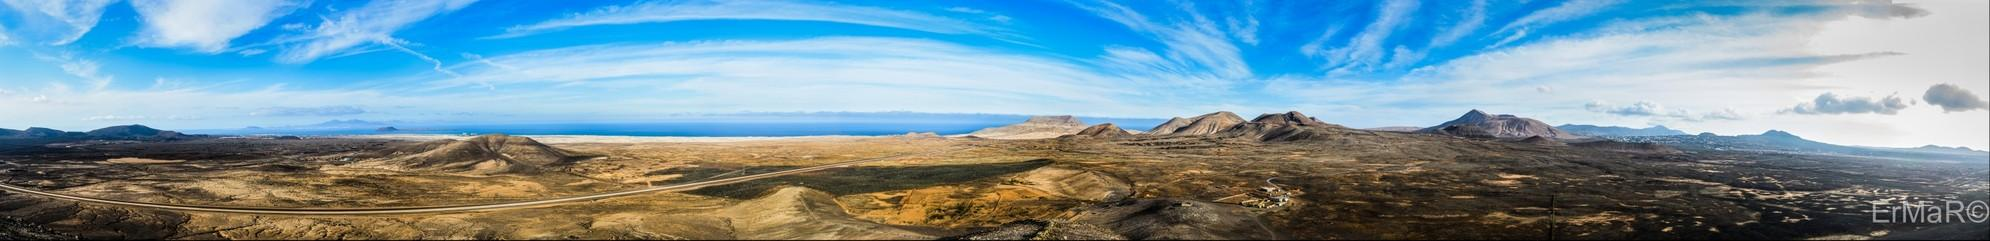 volcanic landscapes in Fuerteventura (Canary Islands)